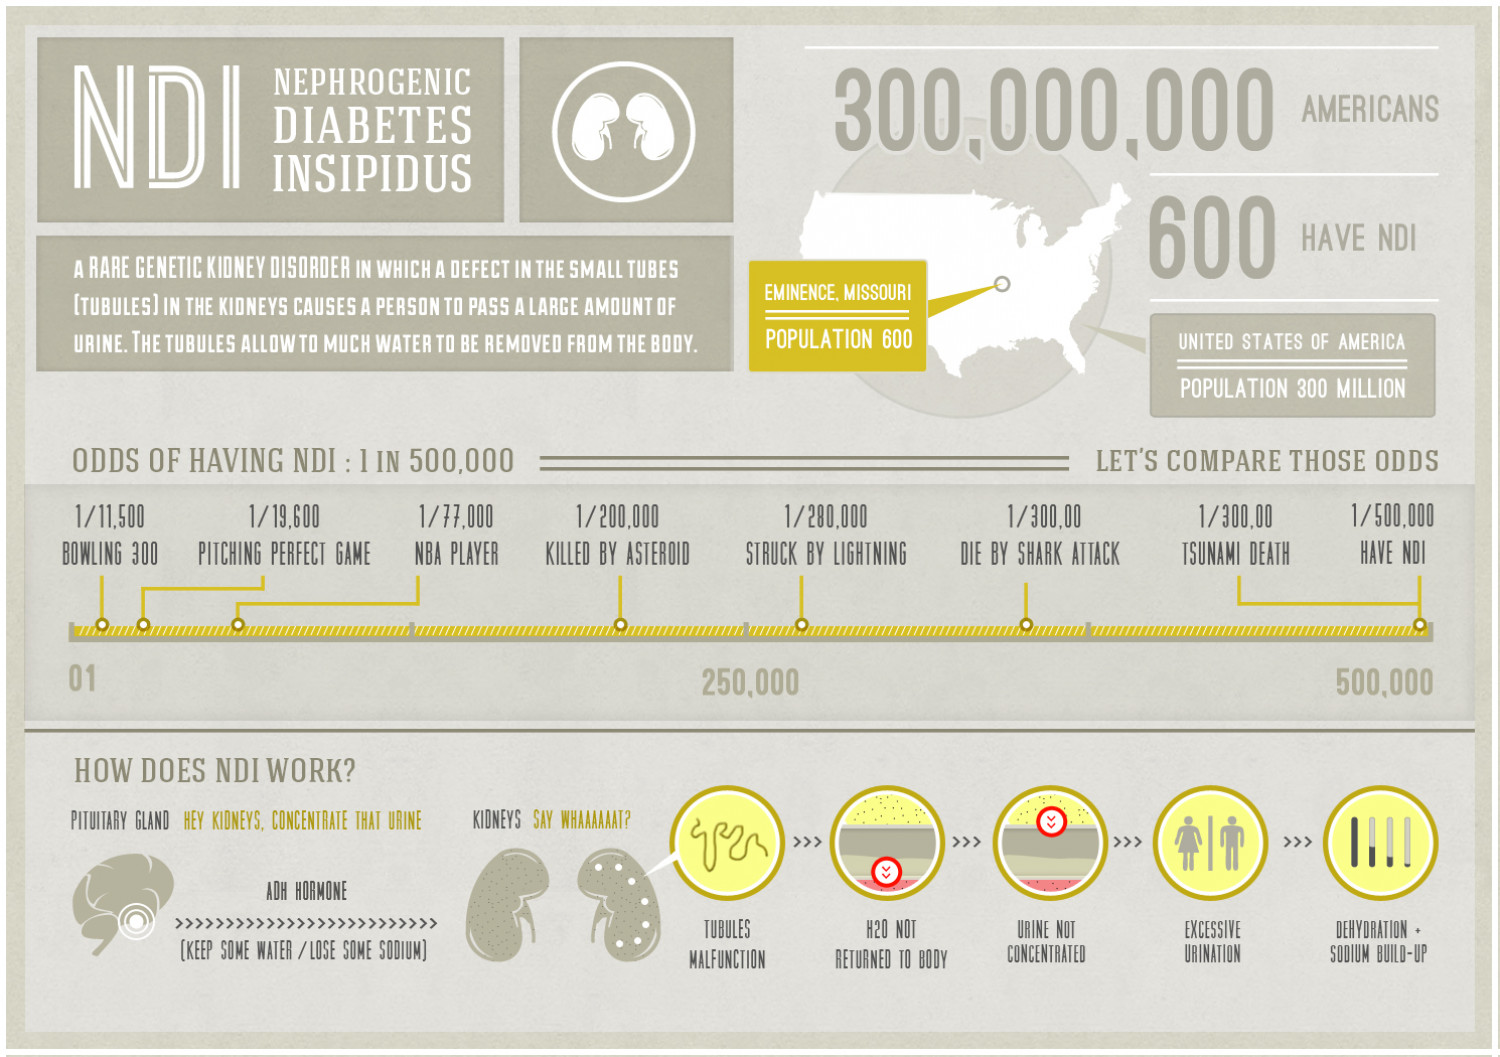 NDI (Nephrogenic Diabetes Insipidus) Infographic